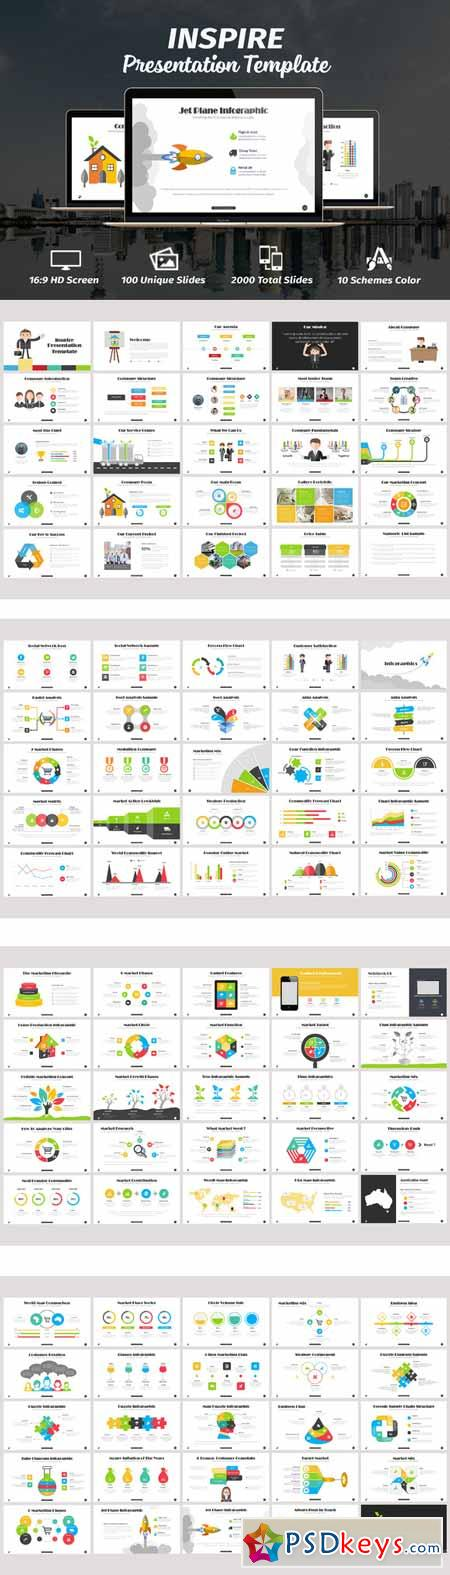 Inspire Powerpoint Template 287472